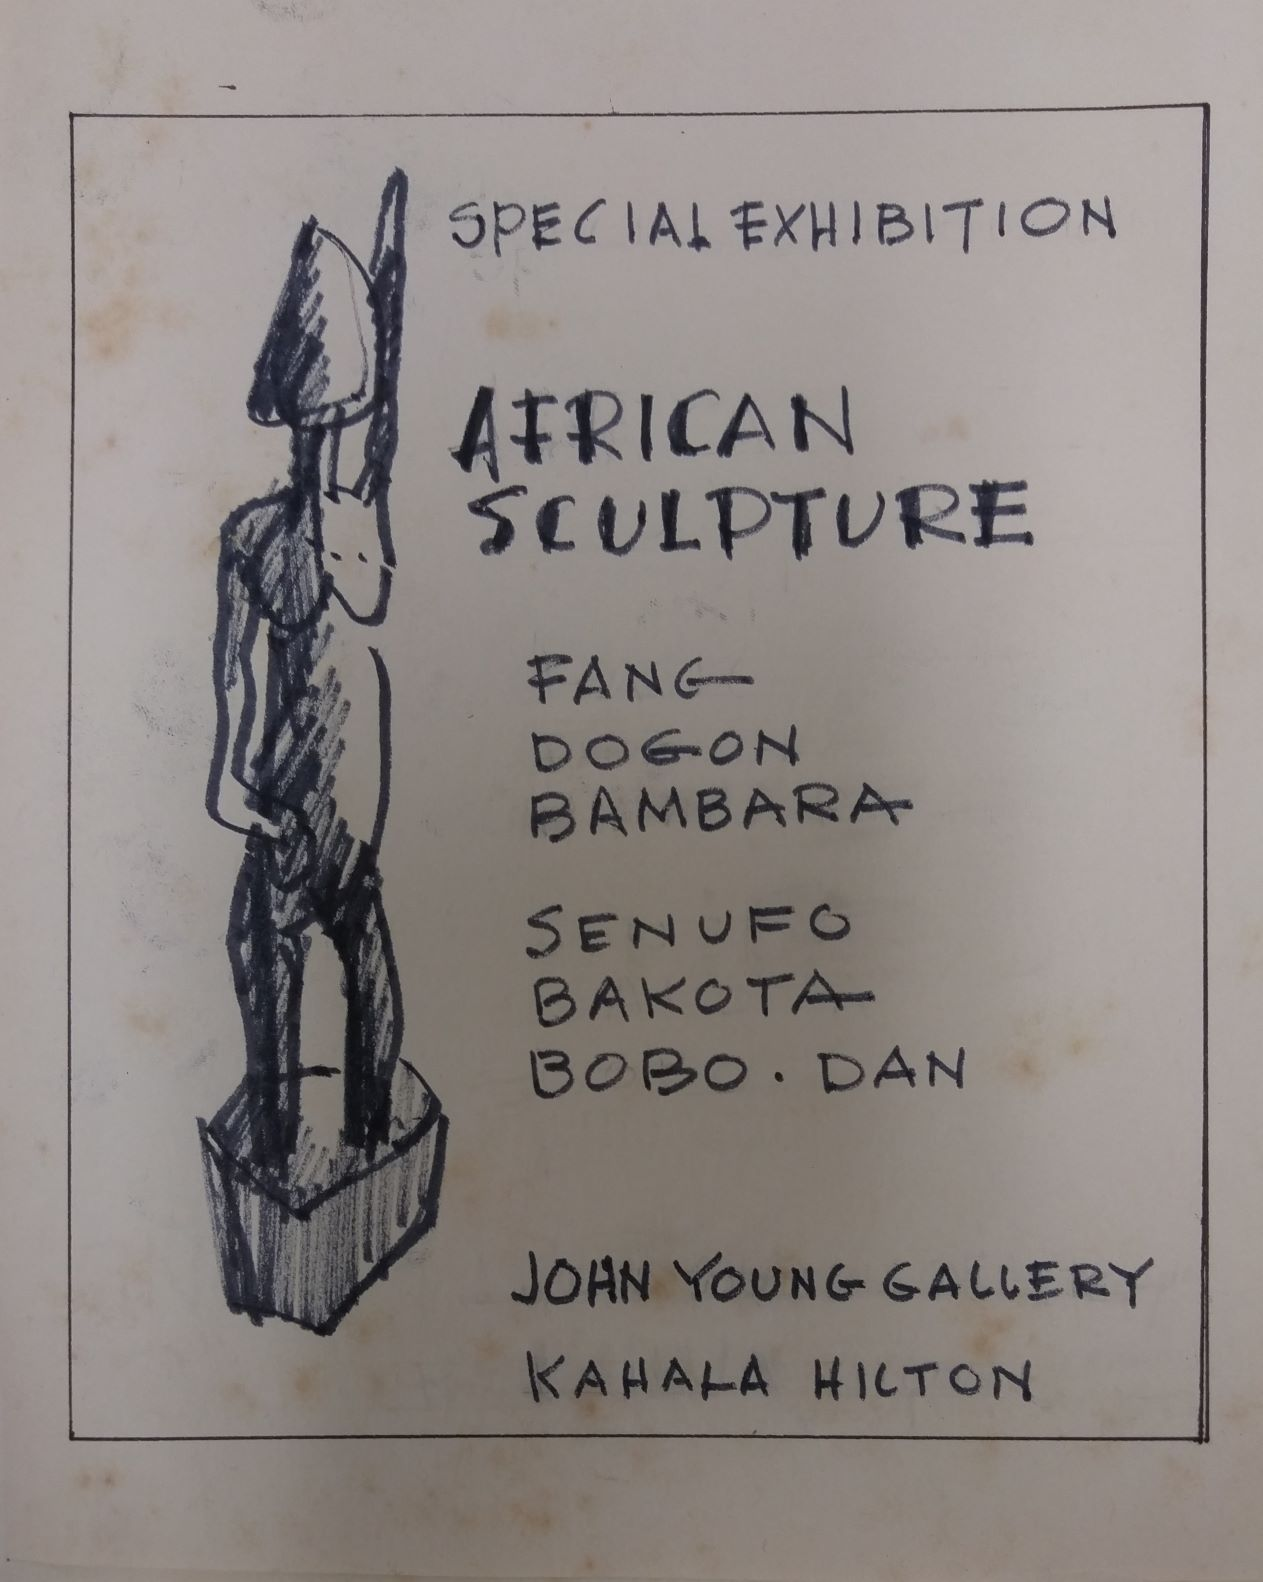 Sketch for John Young Gallery at the Kahala Hilton